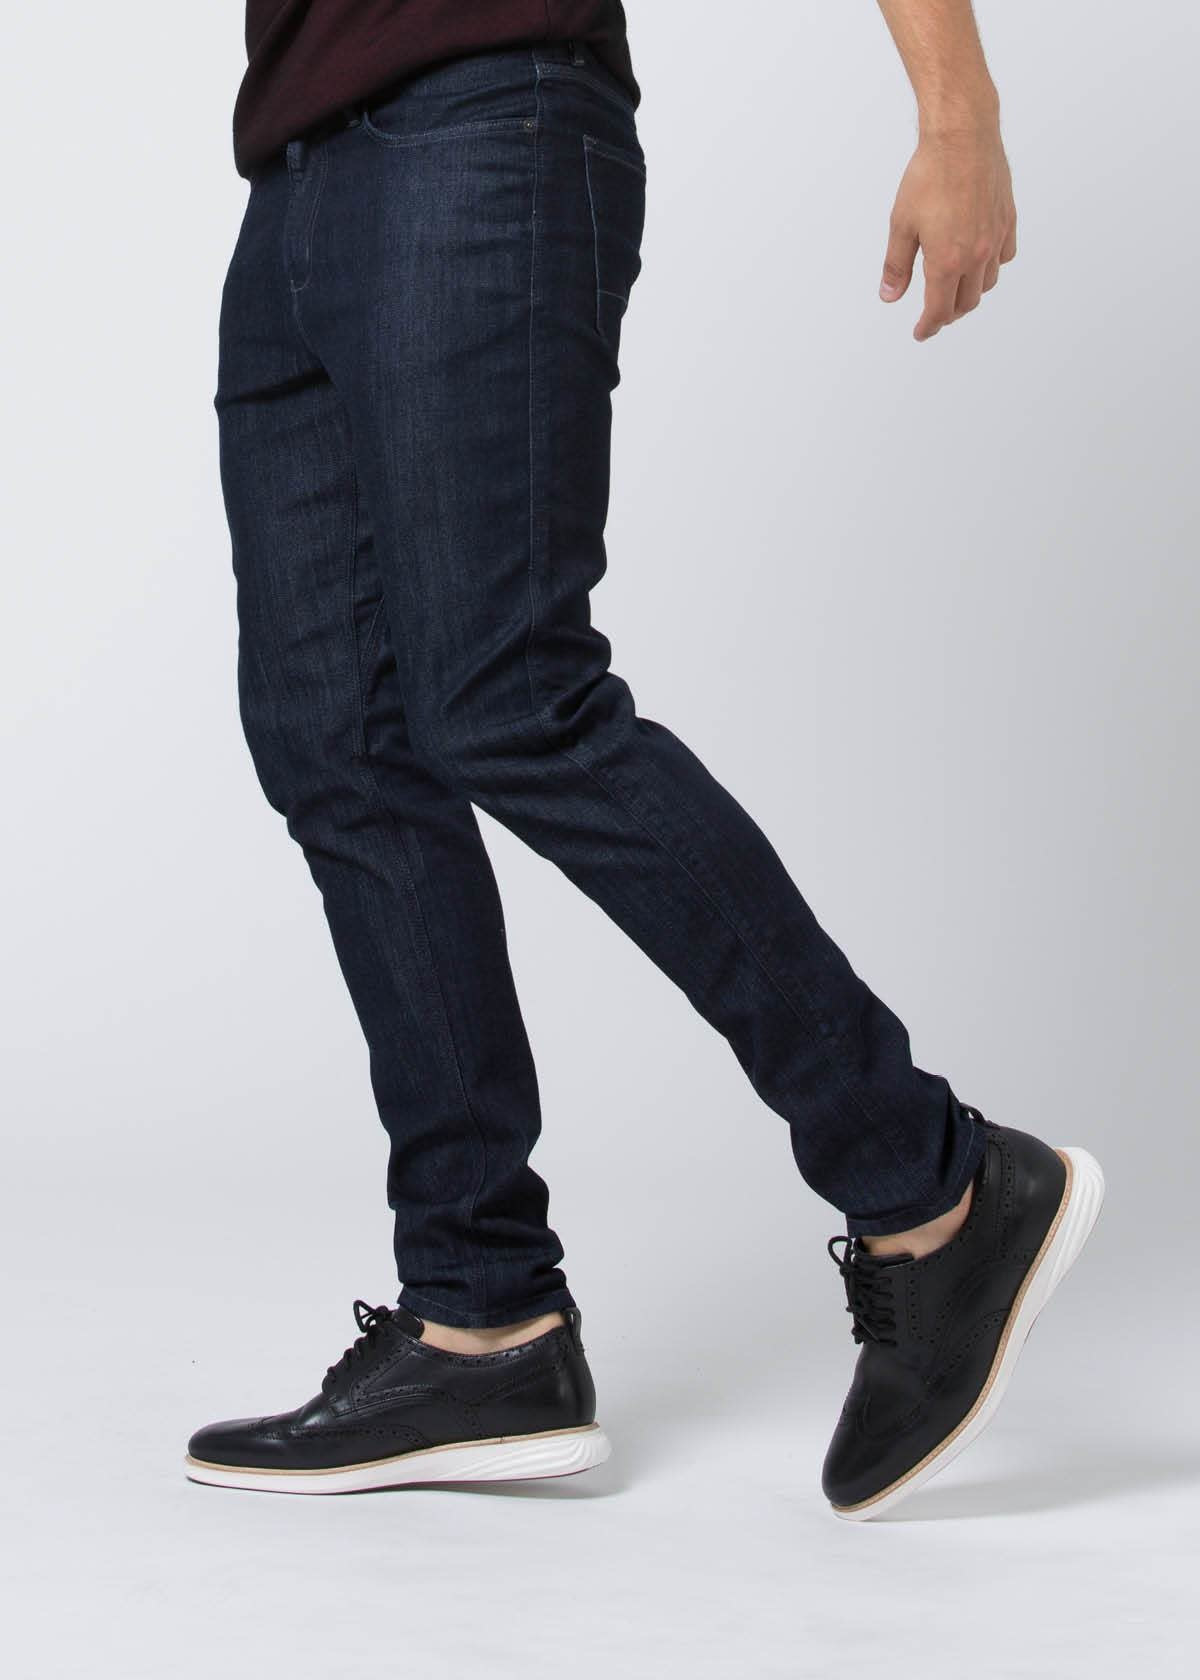 DUER Performance Denim Slim-6